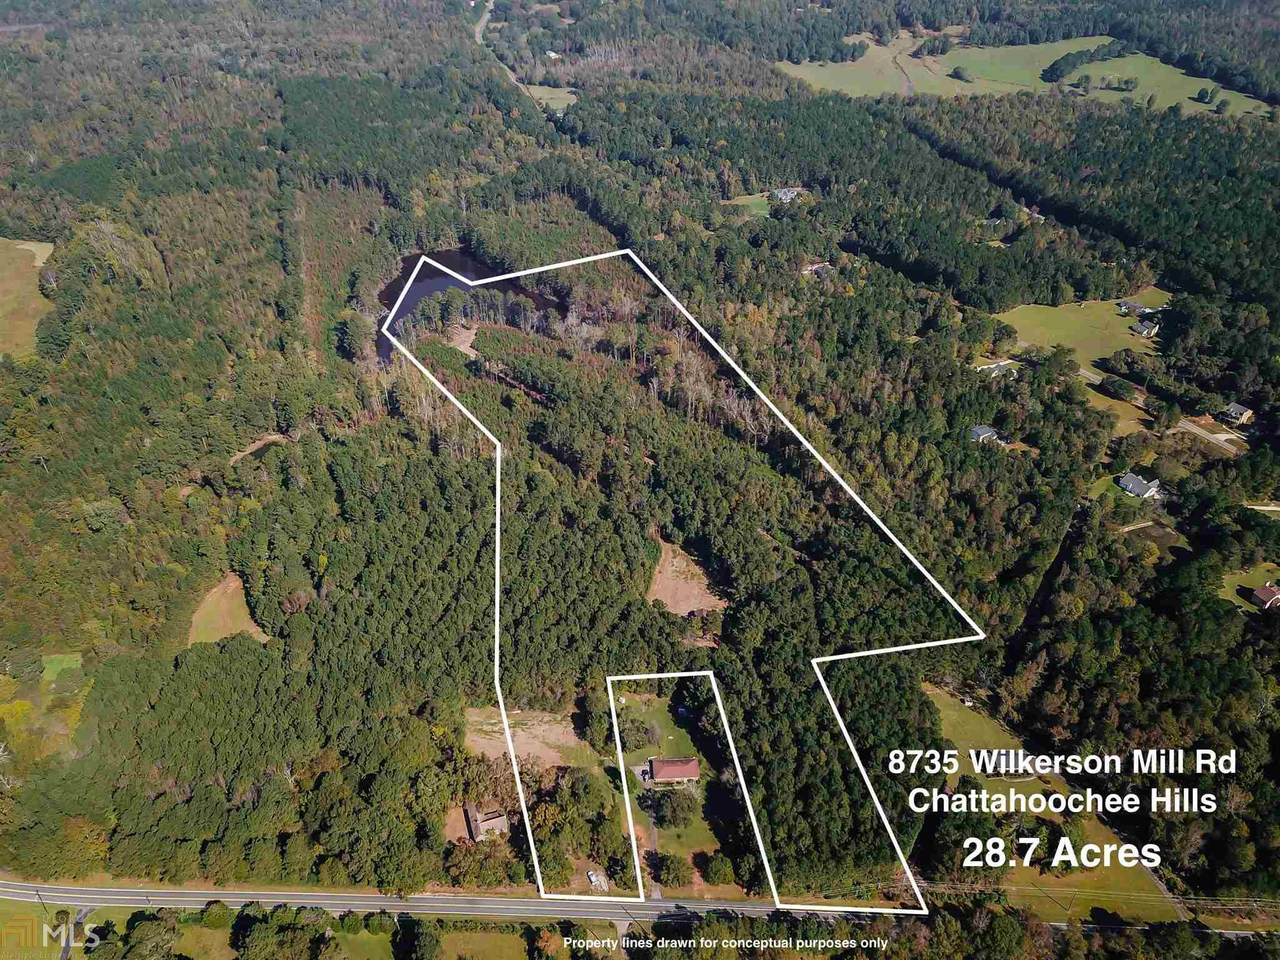 8735 Wilkerson Mill Rd - Photo 1